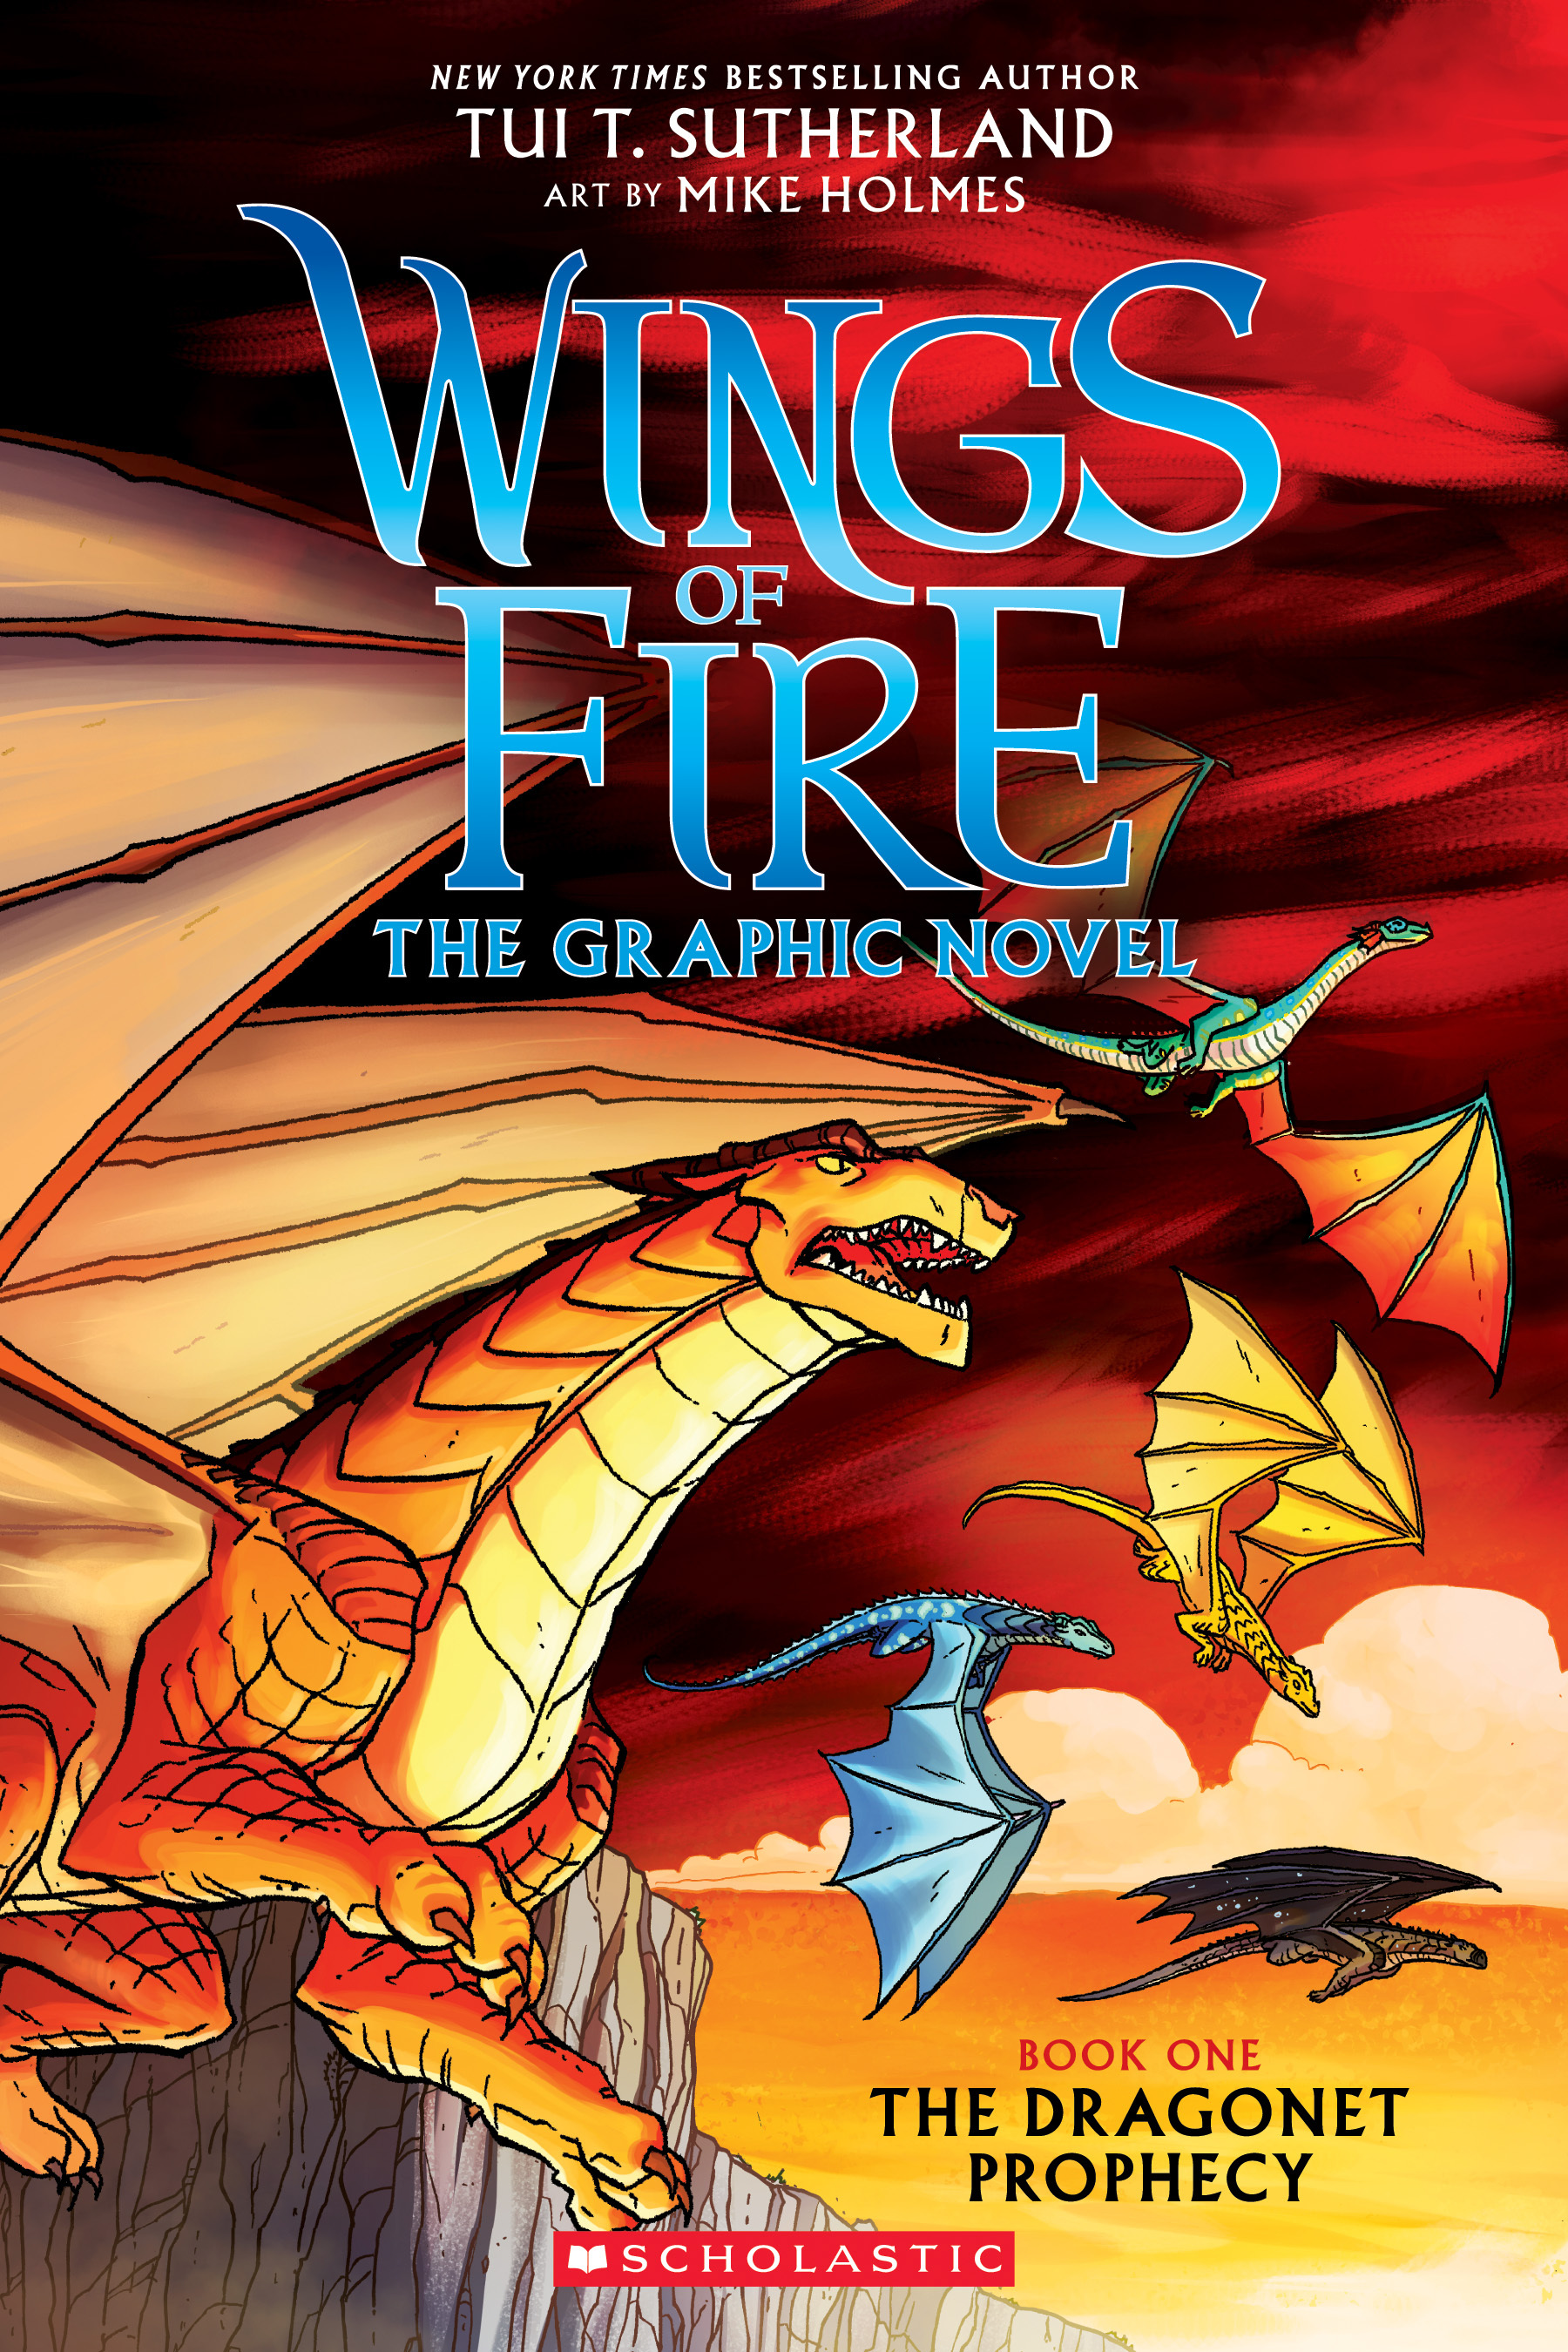 The Dragonet Prophecy (Wings of Fire Graphic Novel #1): A Graphix Book